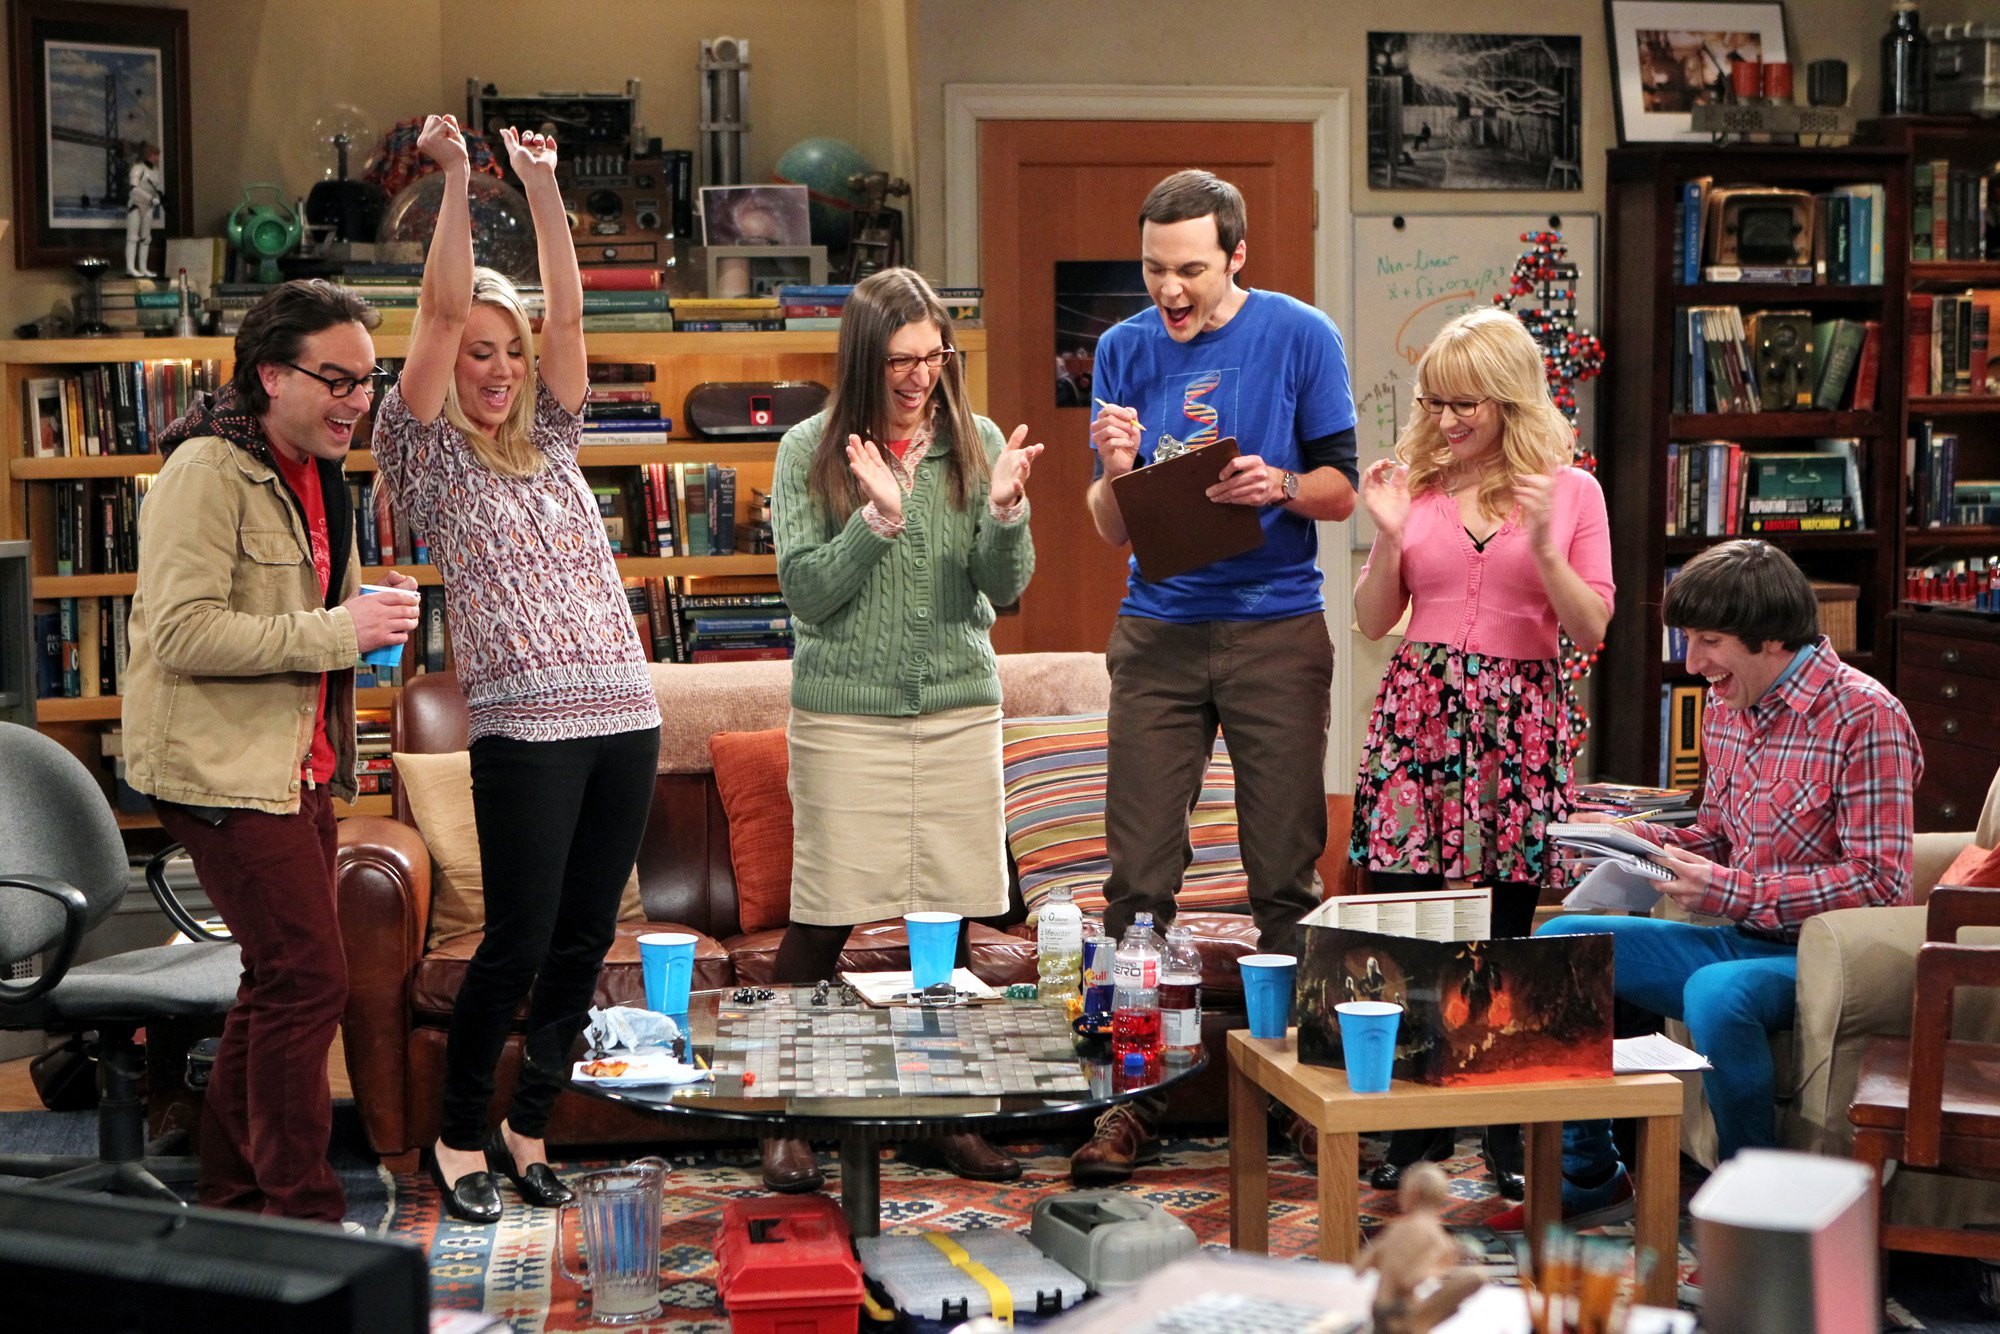 The Big Bang Theory cast could still make an eye-watering $10 million a year after final episode from reruns alone